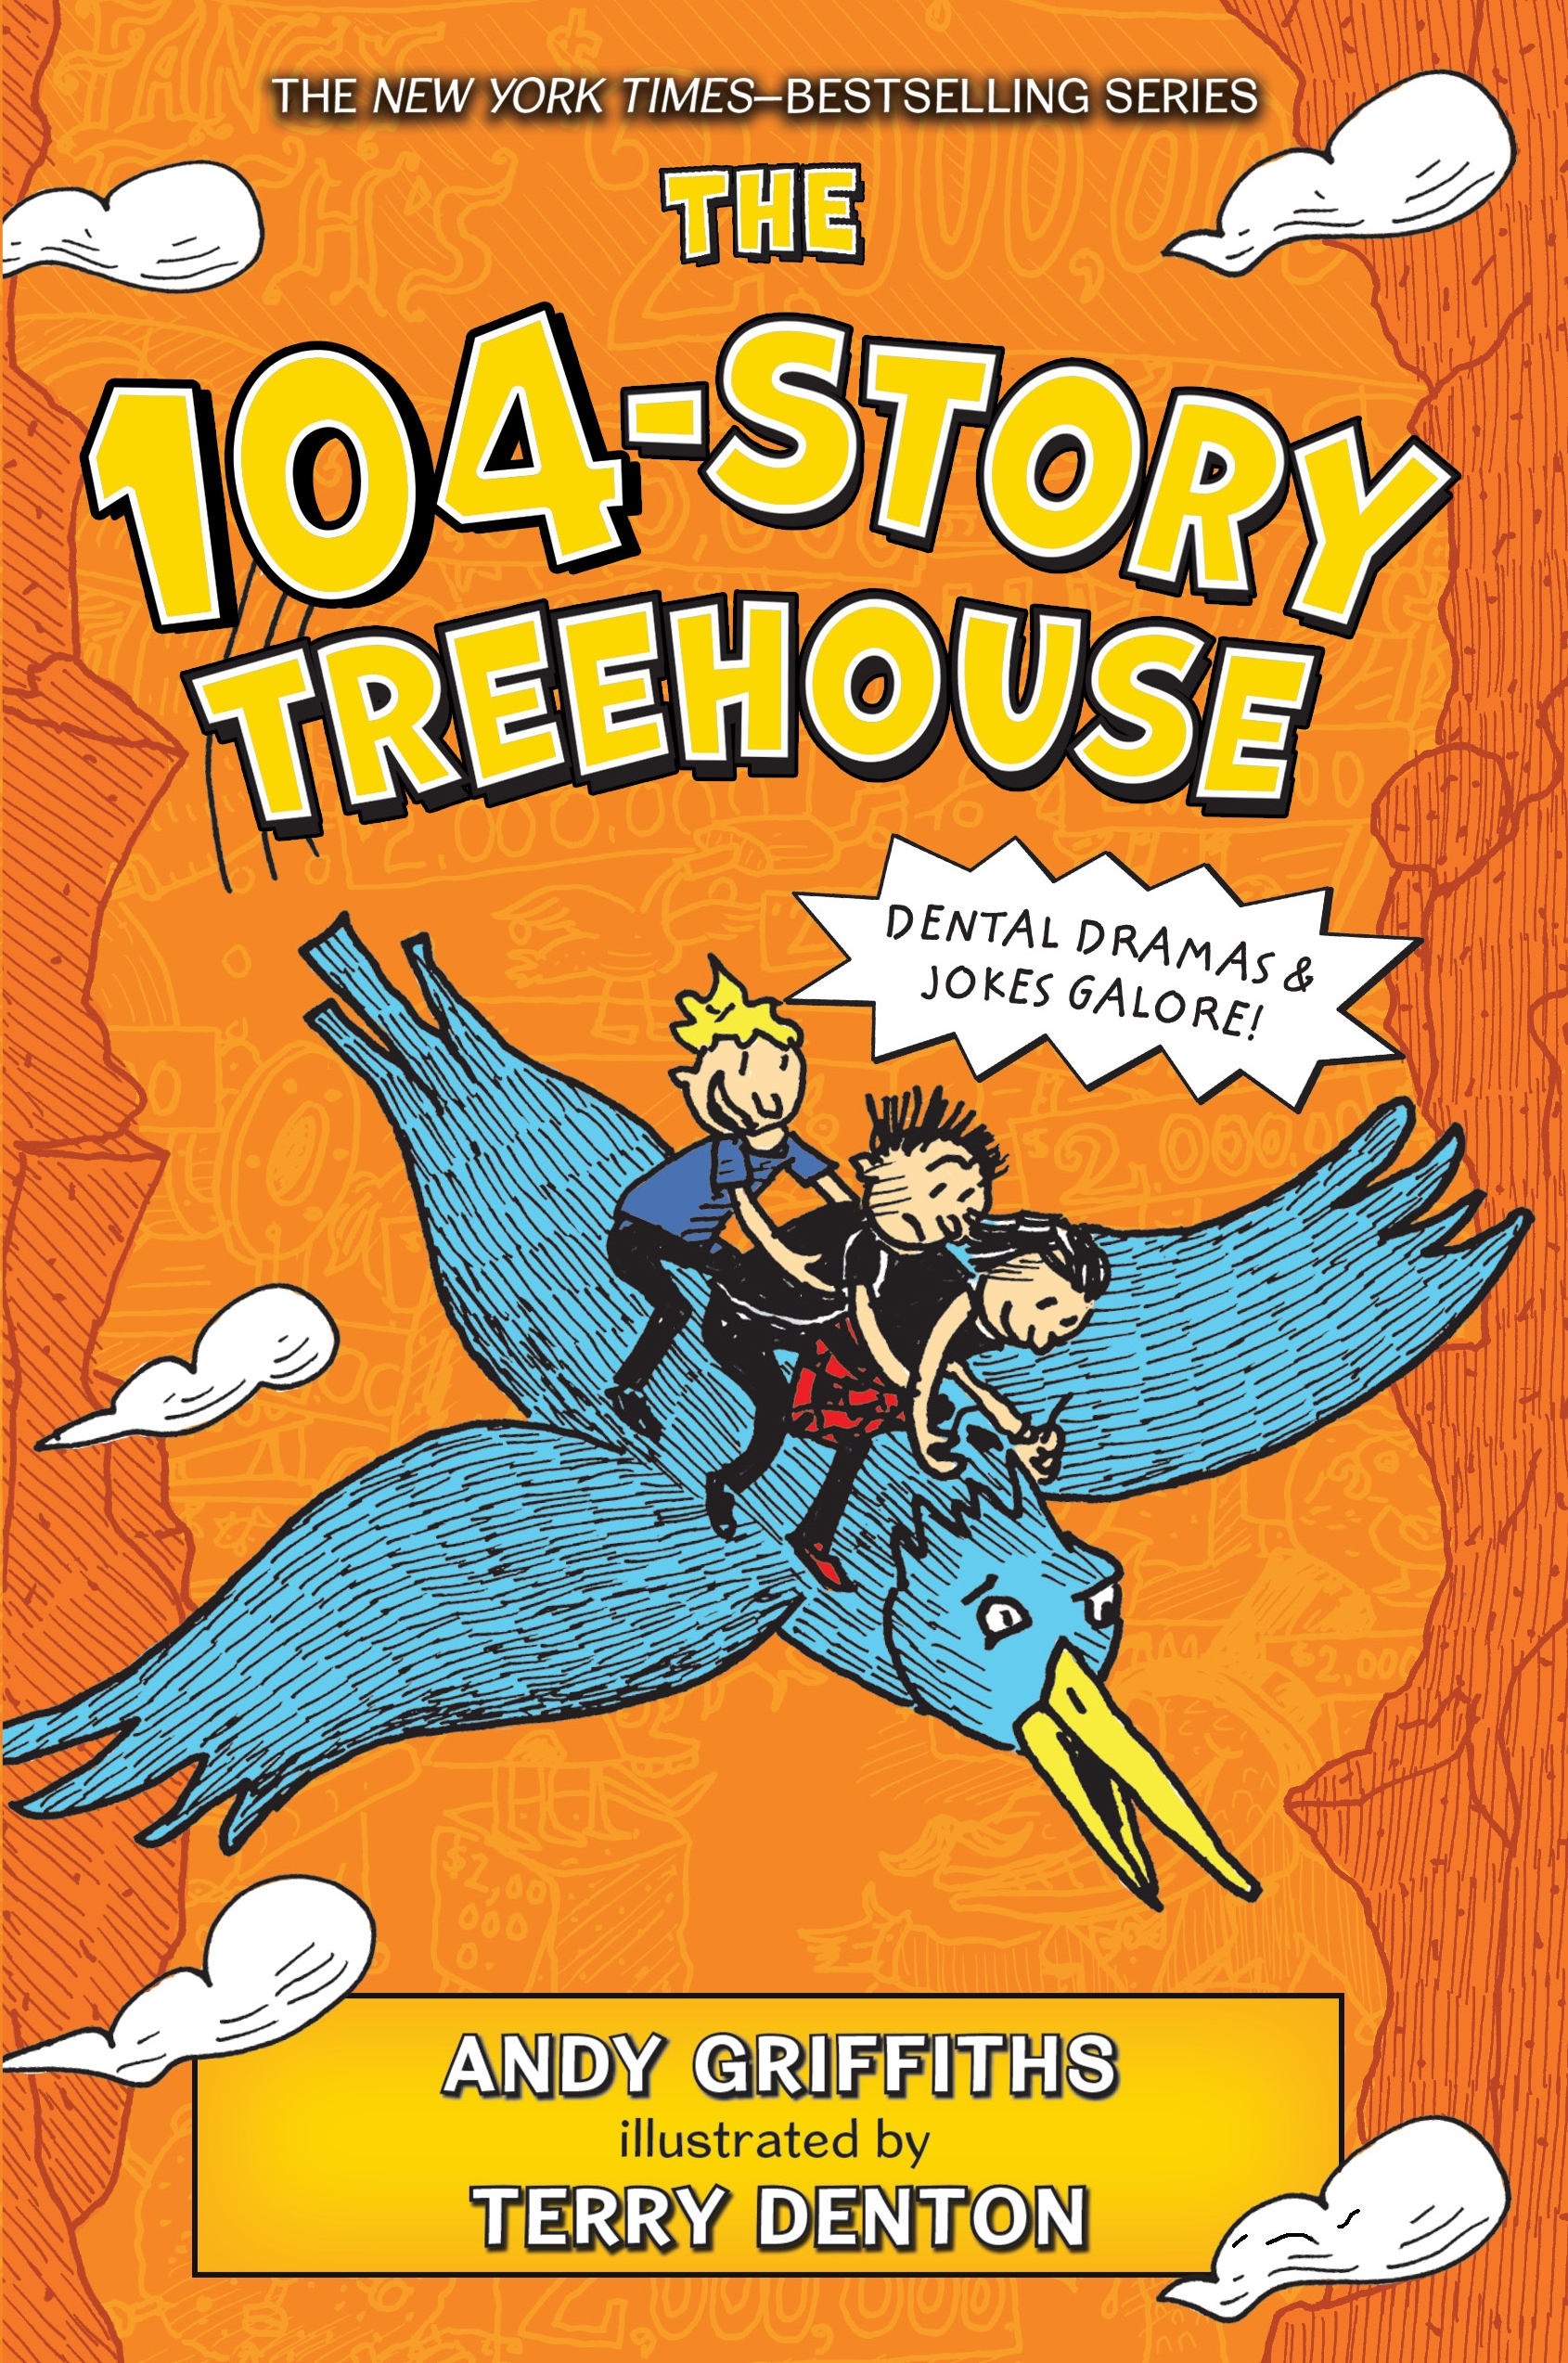 THE 104-STORY TREEHOUSE_cover image.jpg